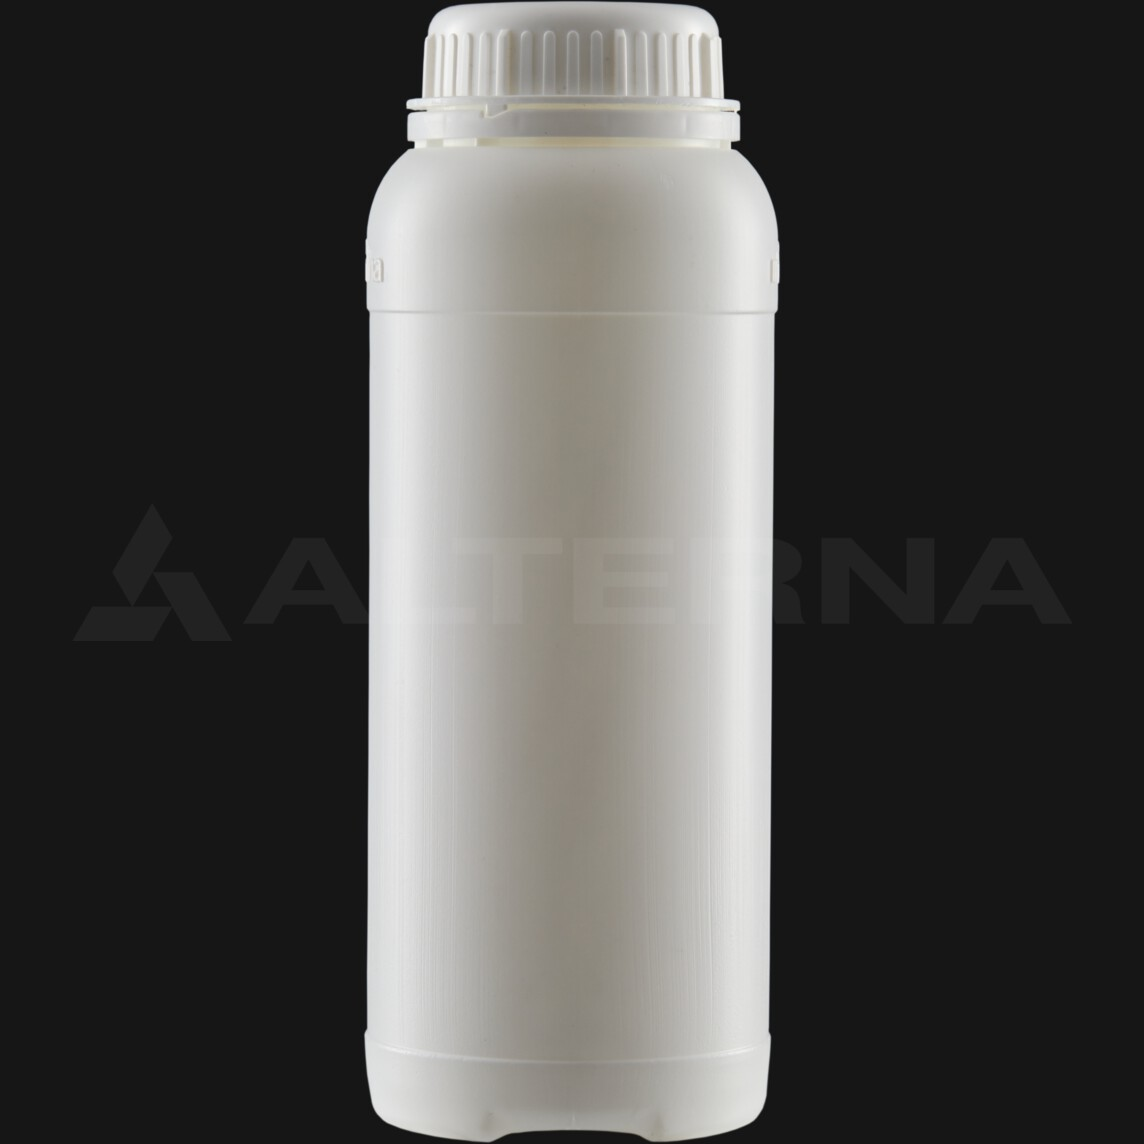 1000 ml HDPE Bottle with 63 mm Foam Seal Secure Cap